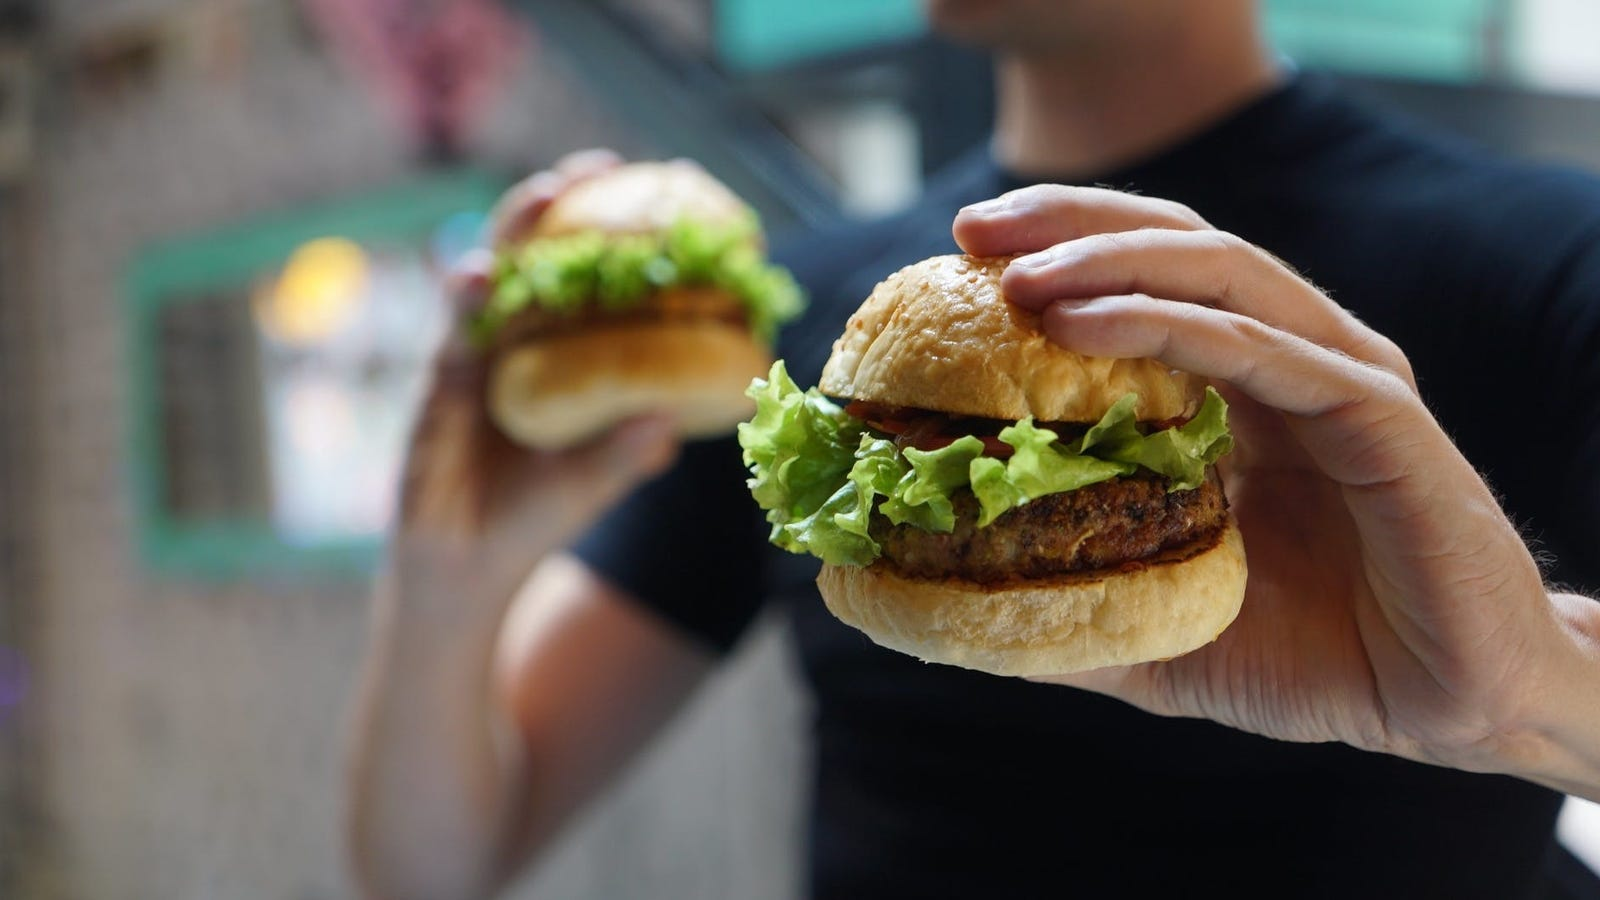 Find The Healthiest Items On 750 Fast Food Menus With This App